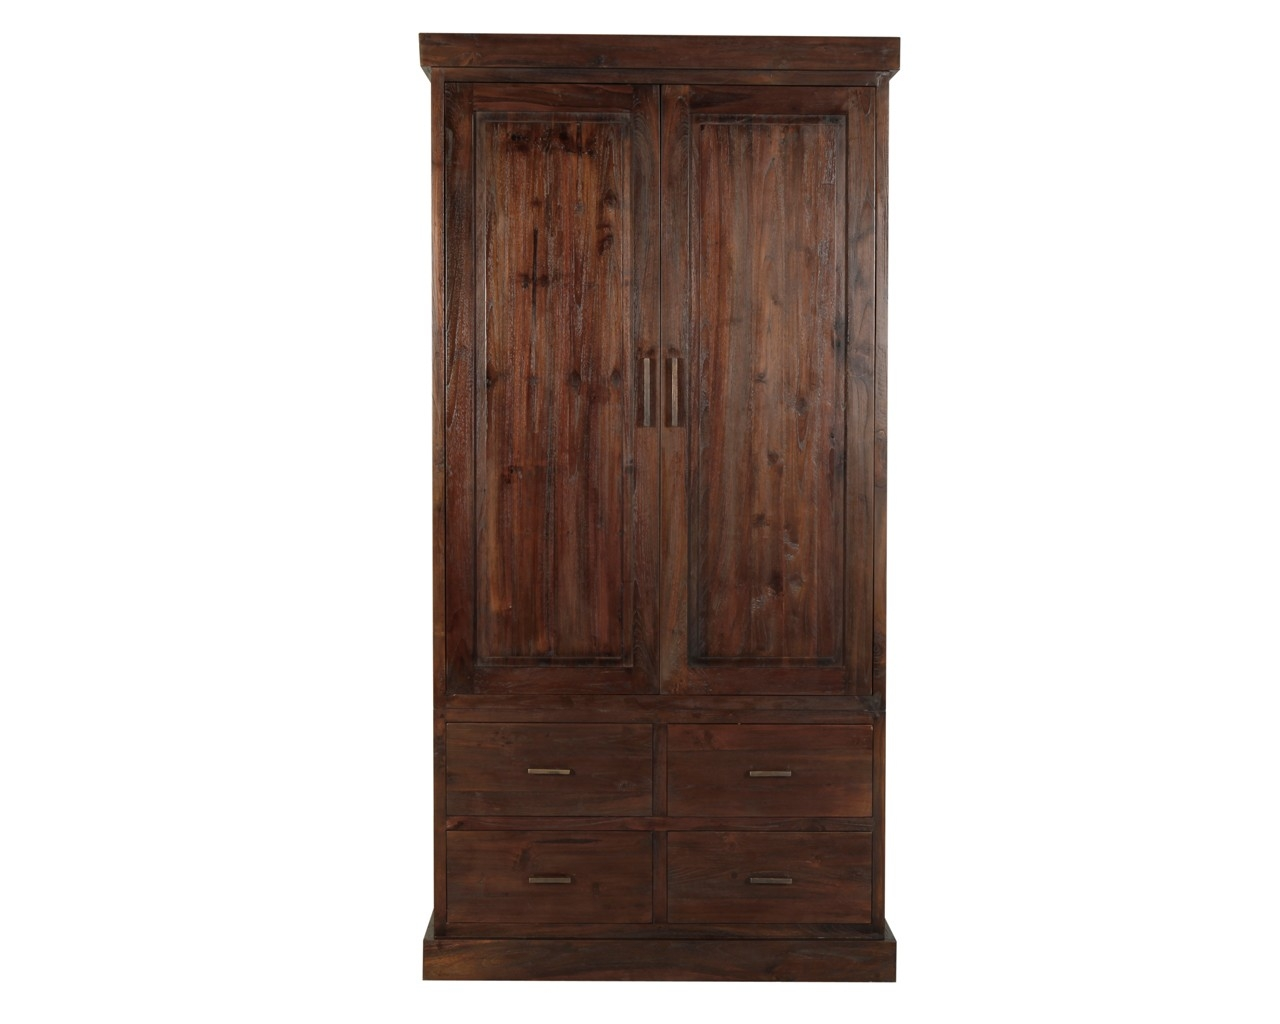 Puji Reclaimed Teak Wardrobes Dark Wood Gents Wardrobe Within Dark Wardrobes (View 2 of 15)